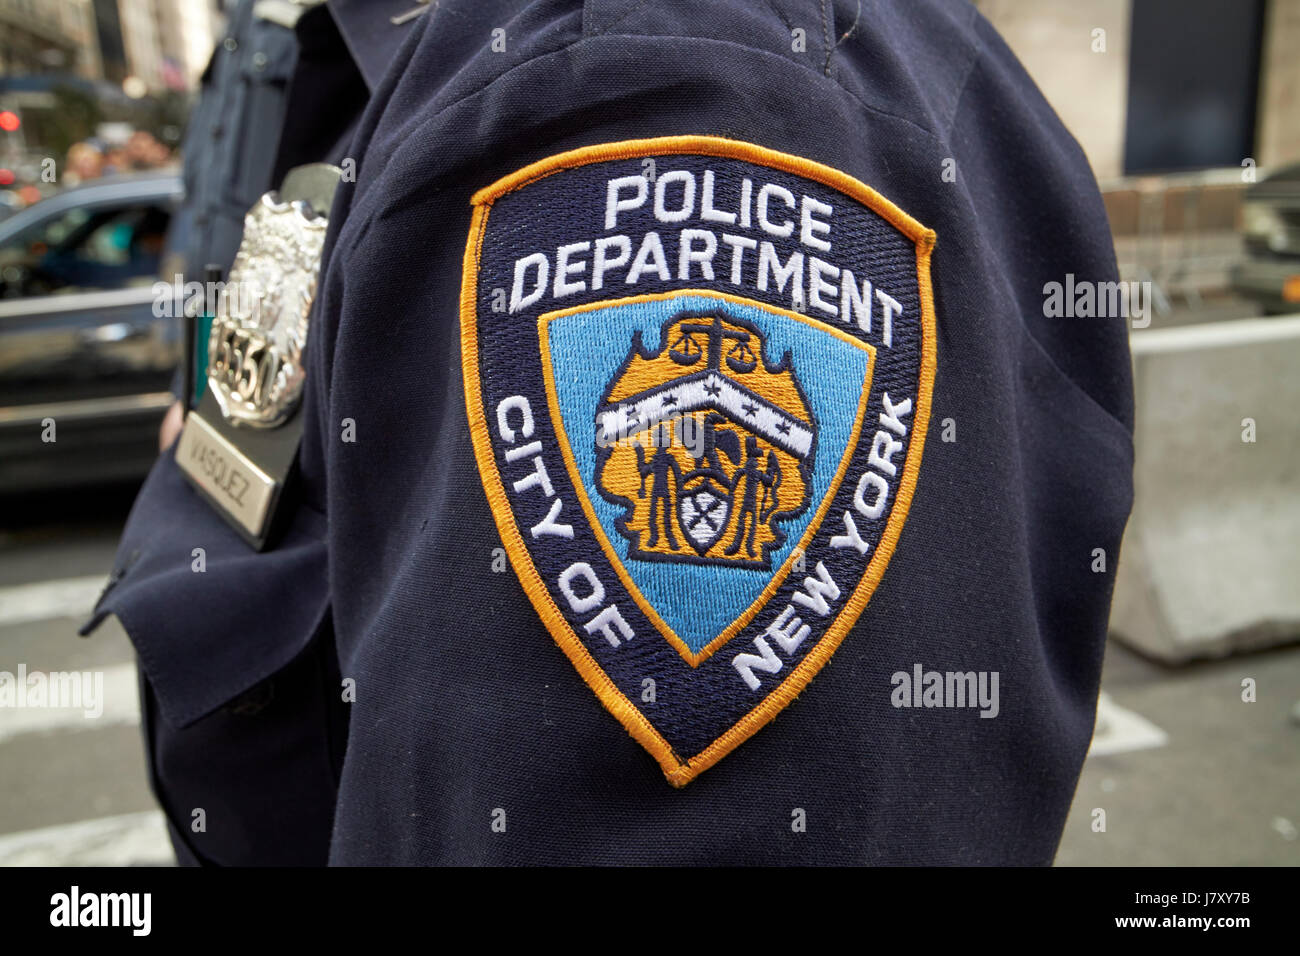 Nypd Stock Photos & Nypd Stock Images - Alamy